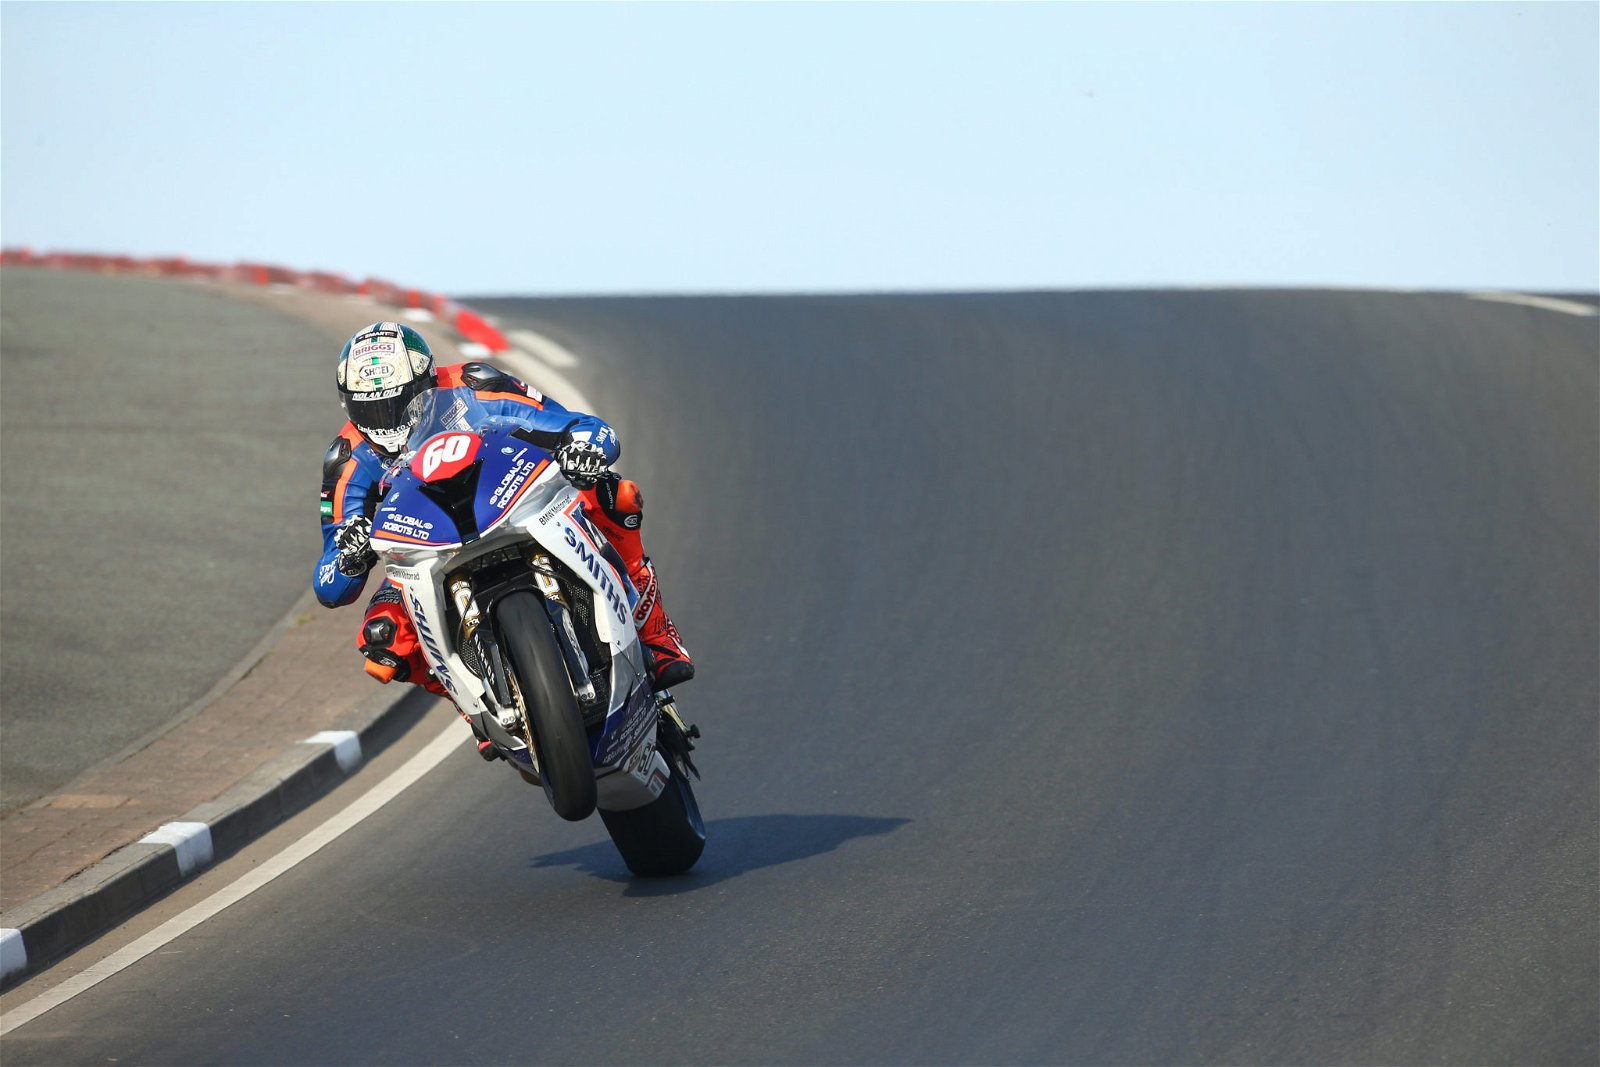 Can Rutter take the top step at the North West 200? credit Double Red